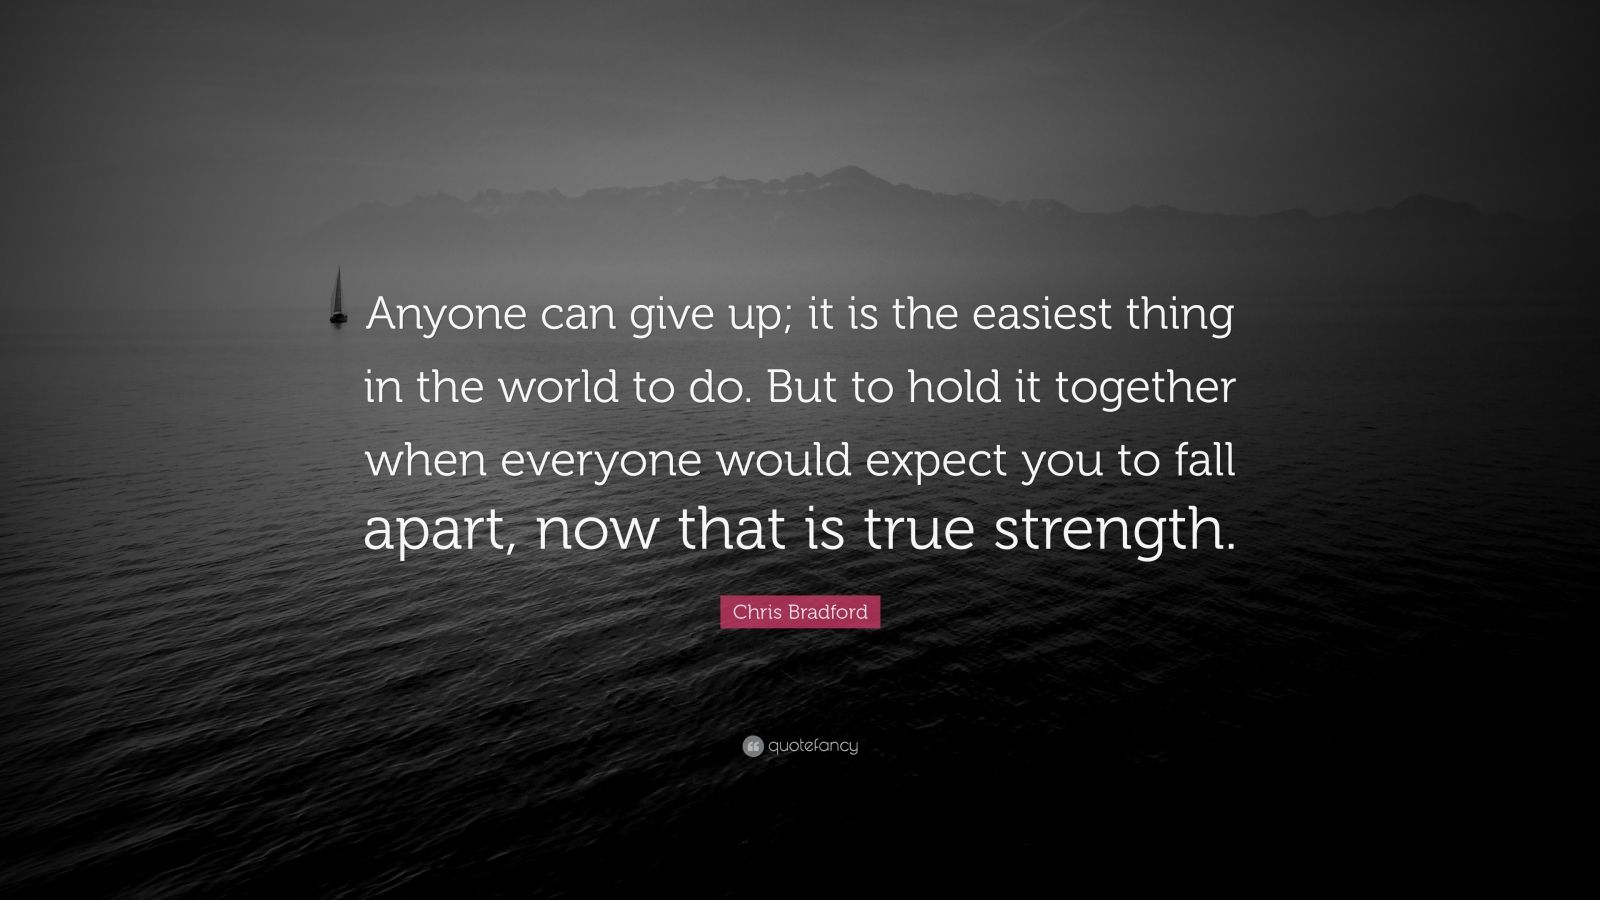 "Being Strong Quotes: ""Anyone can give up; it is the easiest thing in the world to do. But to hold it together when everyone would expect you to fall apart, now that is true strength."" — Chris Bradford"